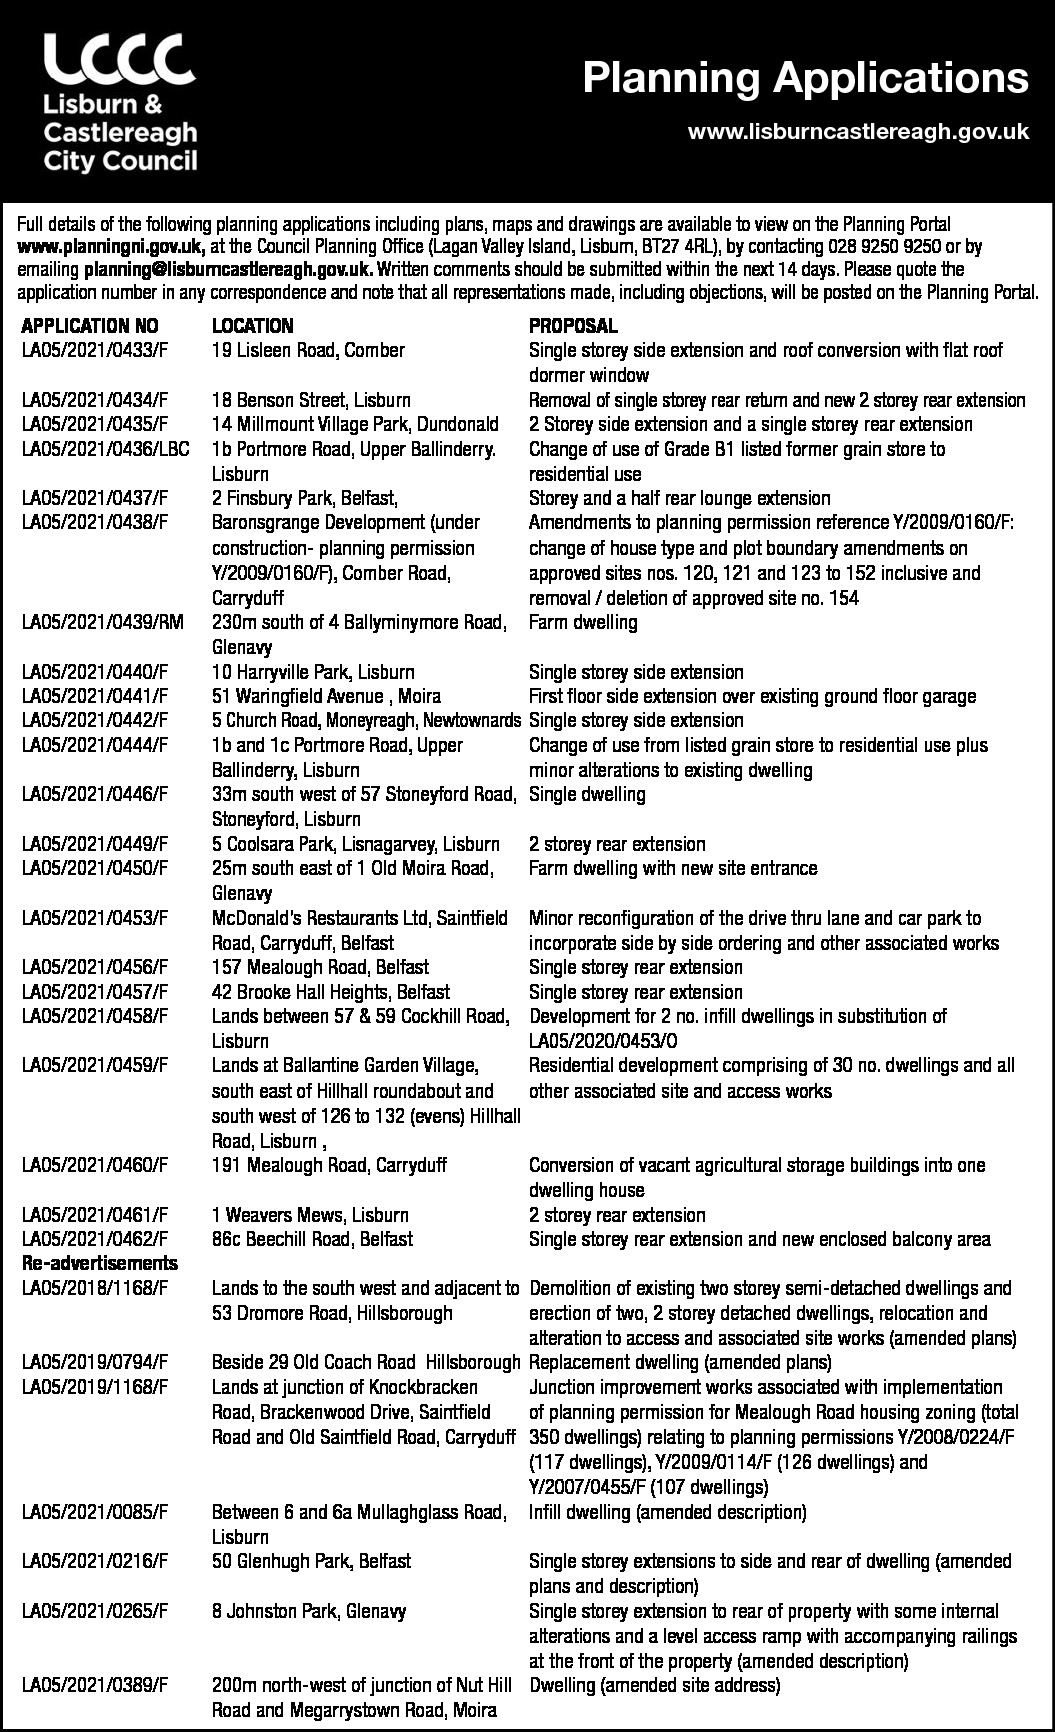 Lisburn and Castlereagh City Council - Planning Applications